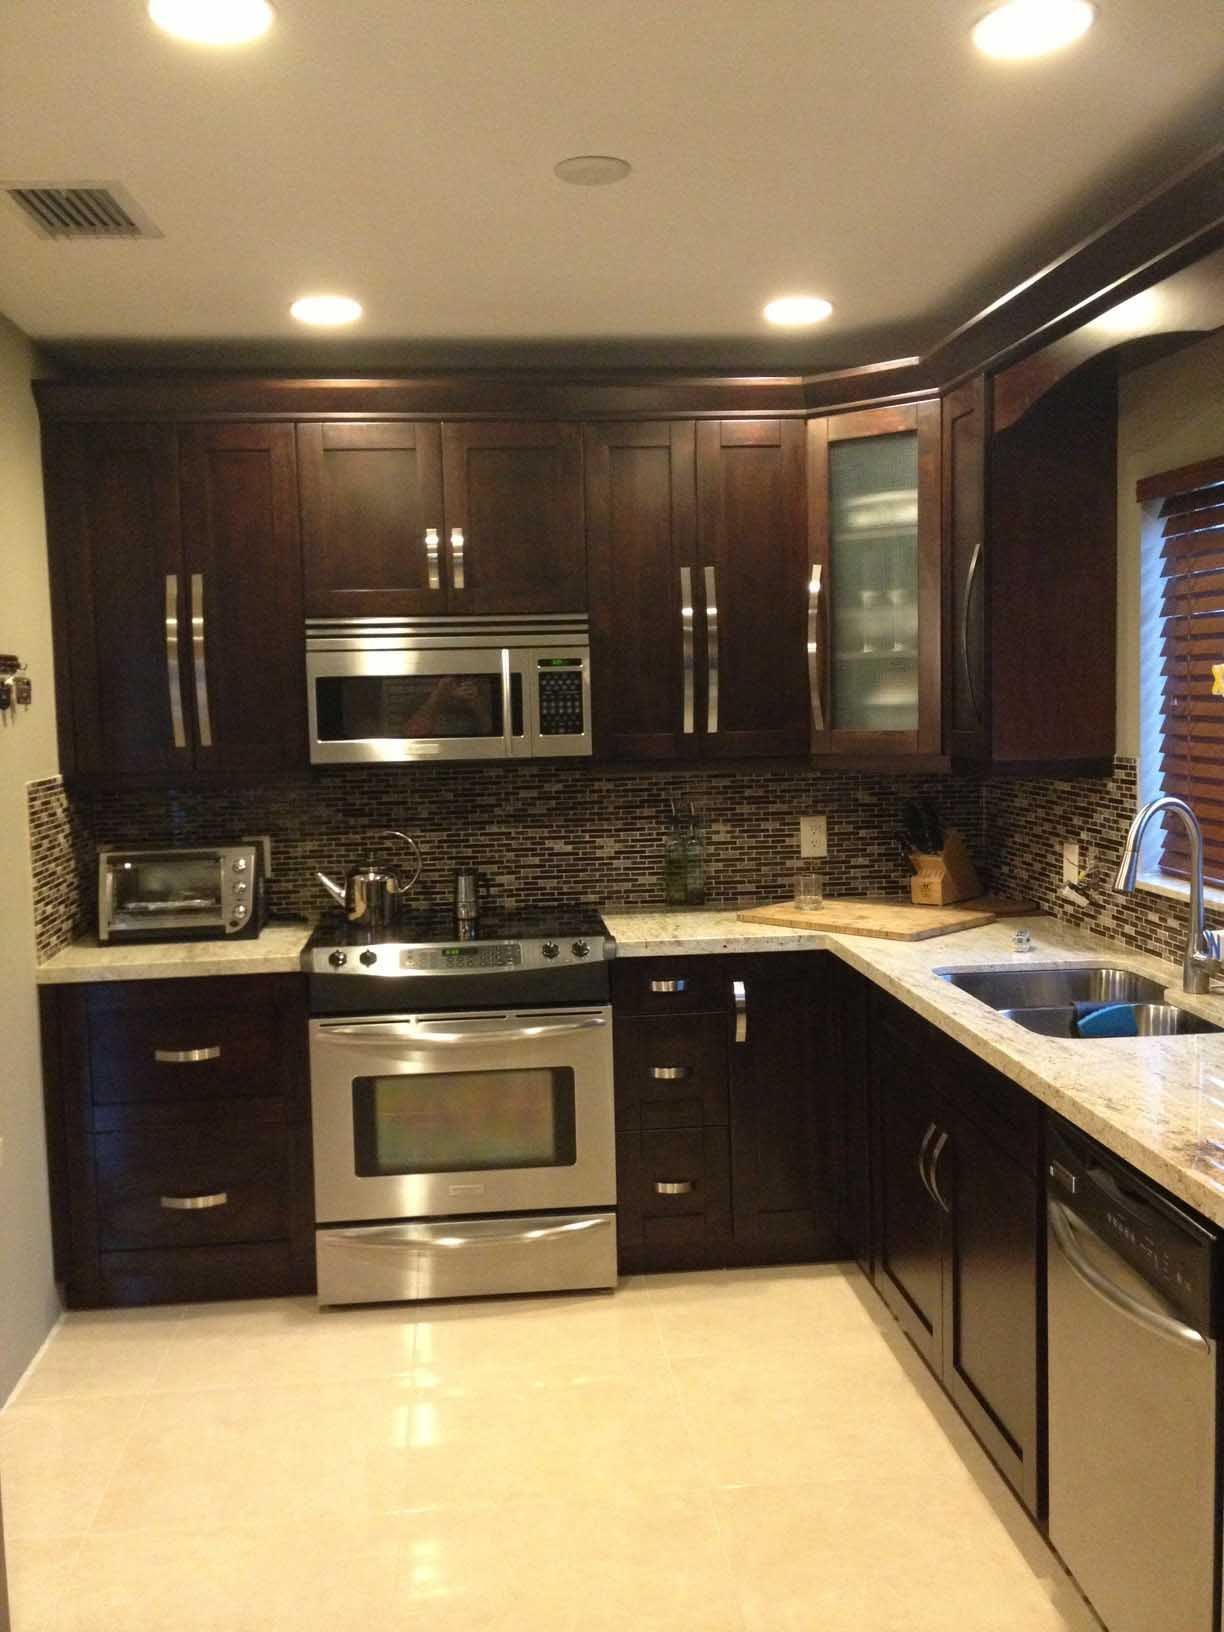 new kitchens in miami dade kitchen cabinets miami New kitchen in Miami s Schenley Park